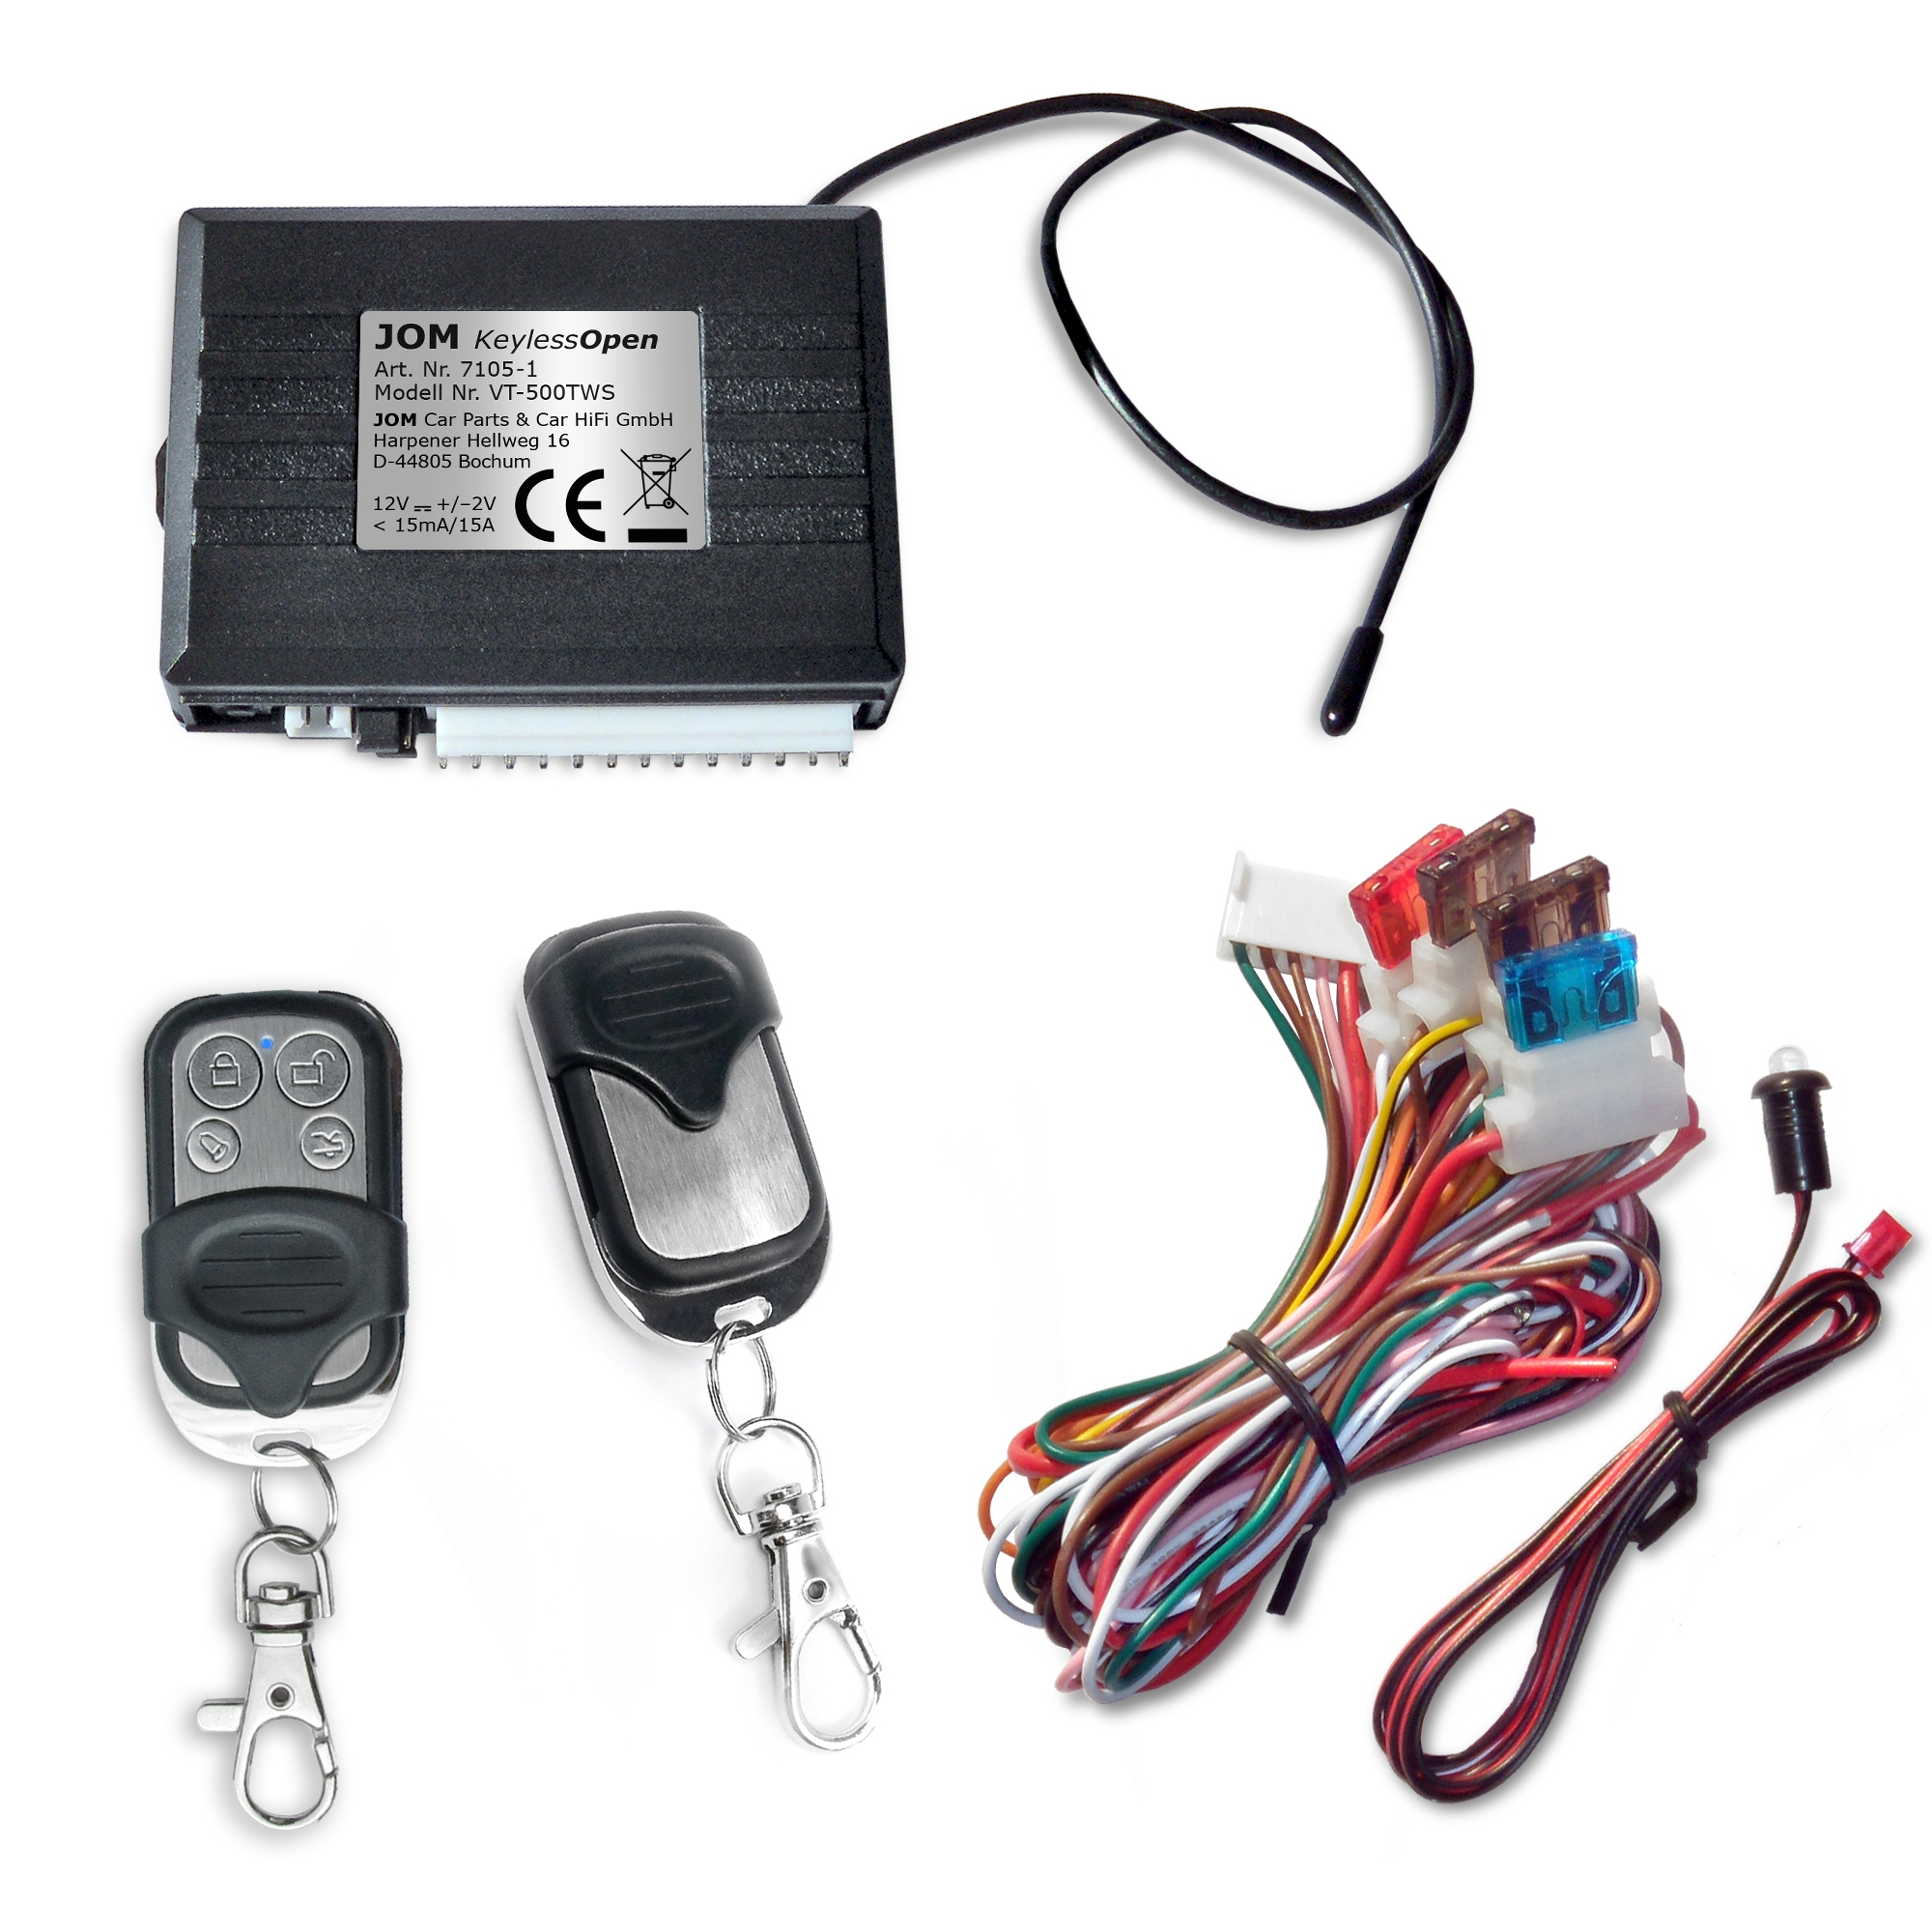 Radio Remote Control Central Locking for 2 4 Doors Boot Car Central Locking